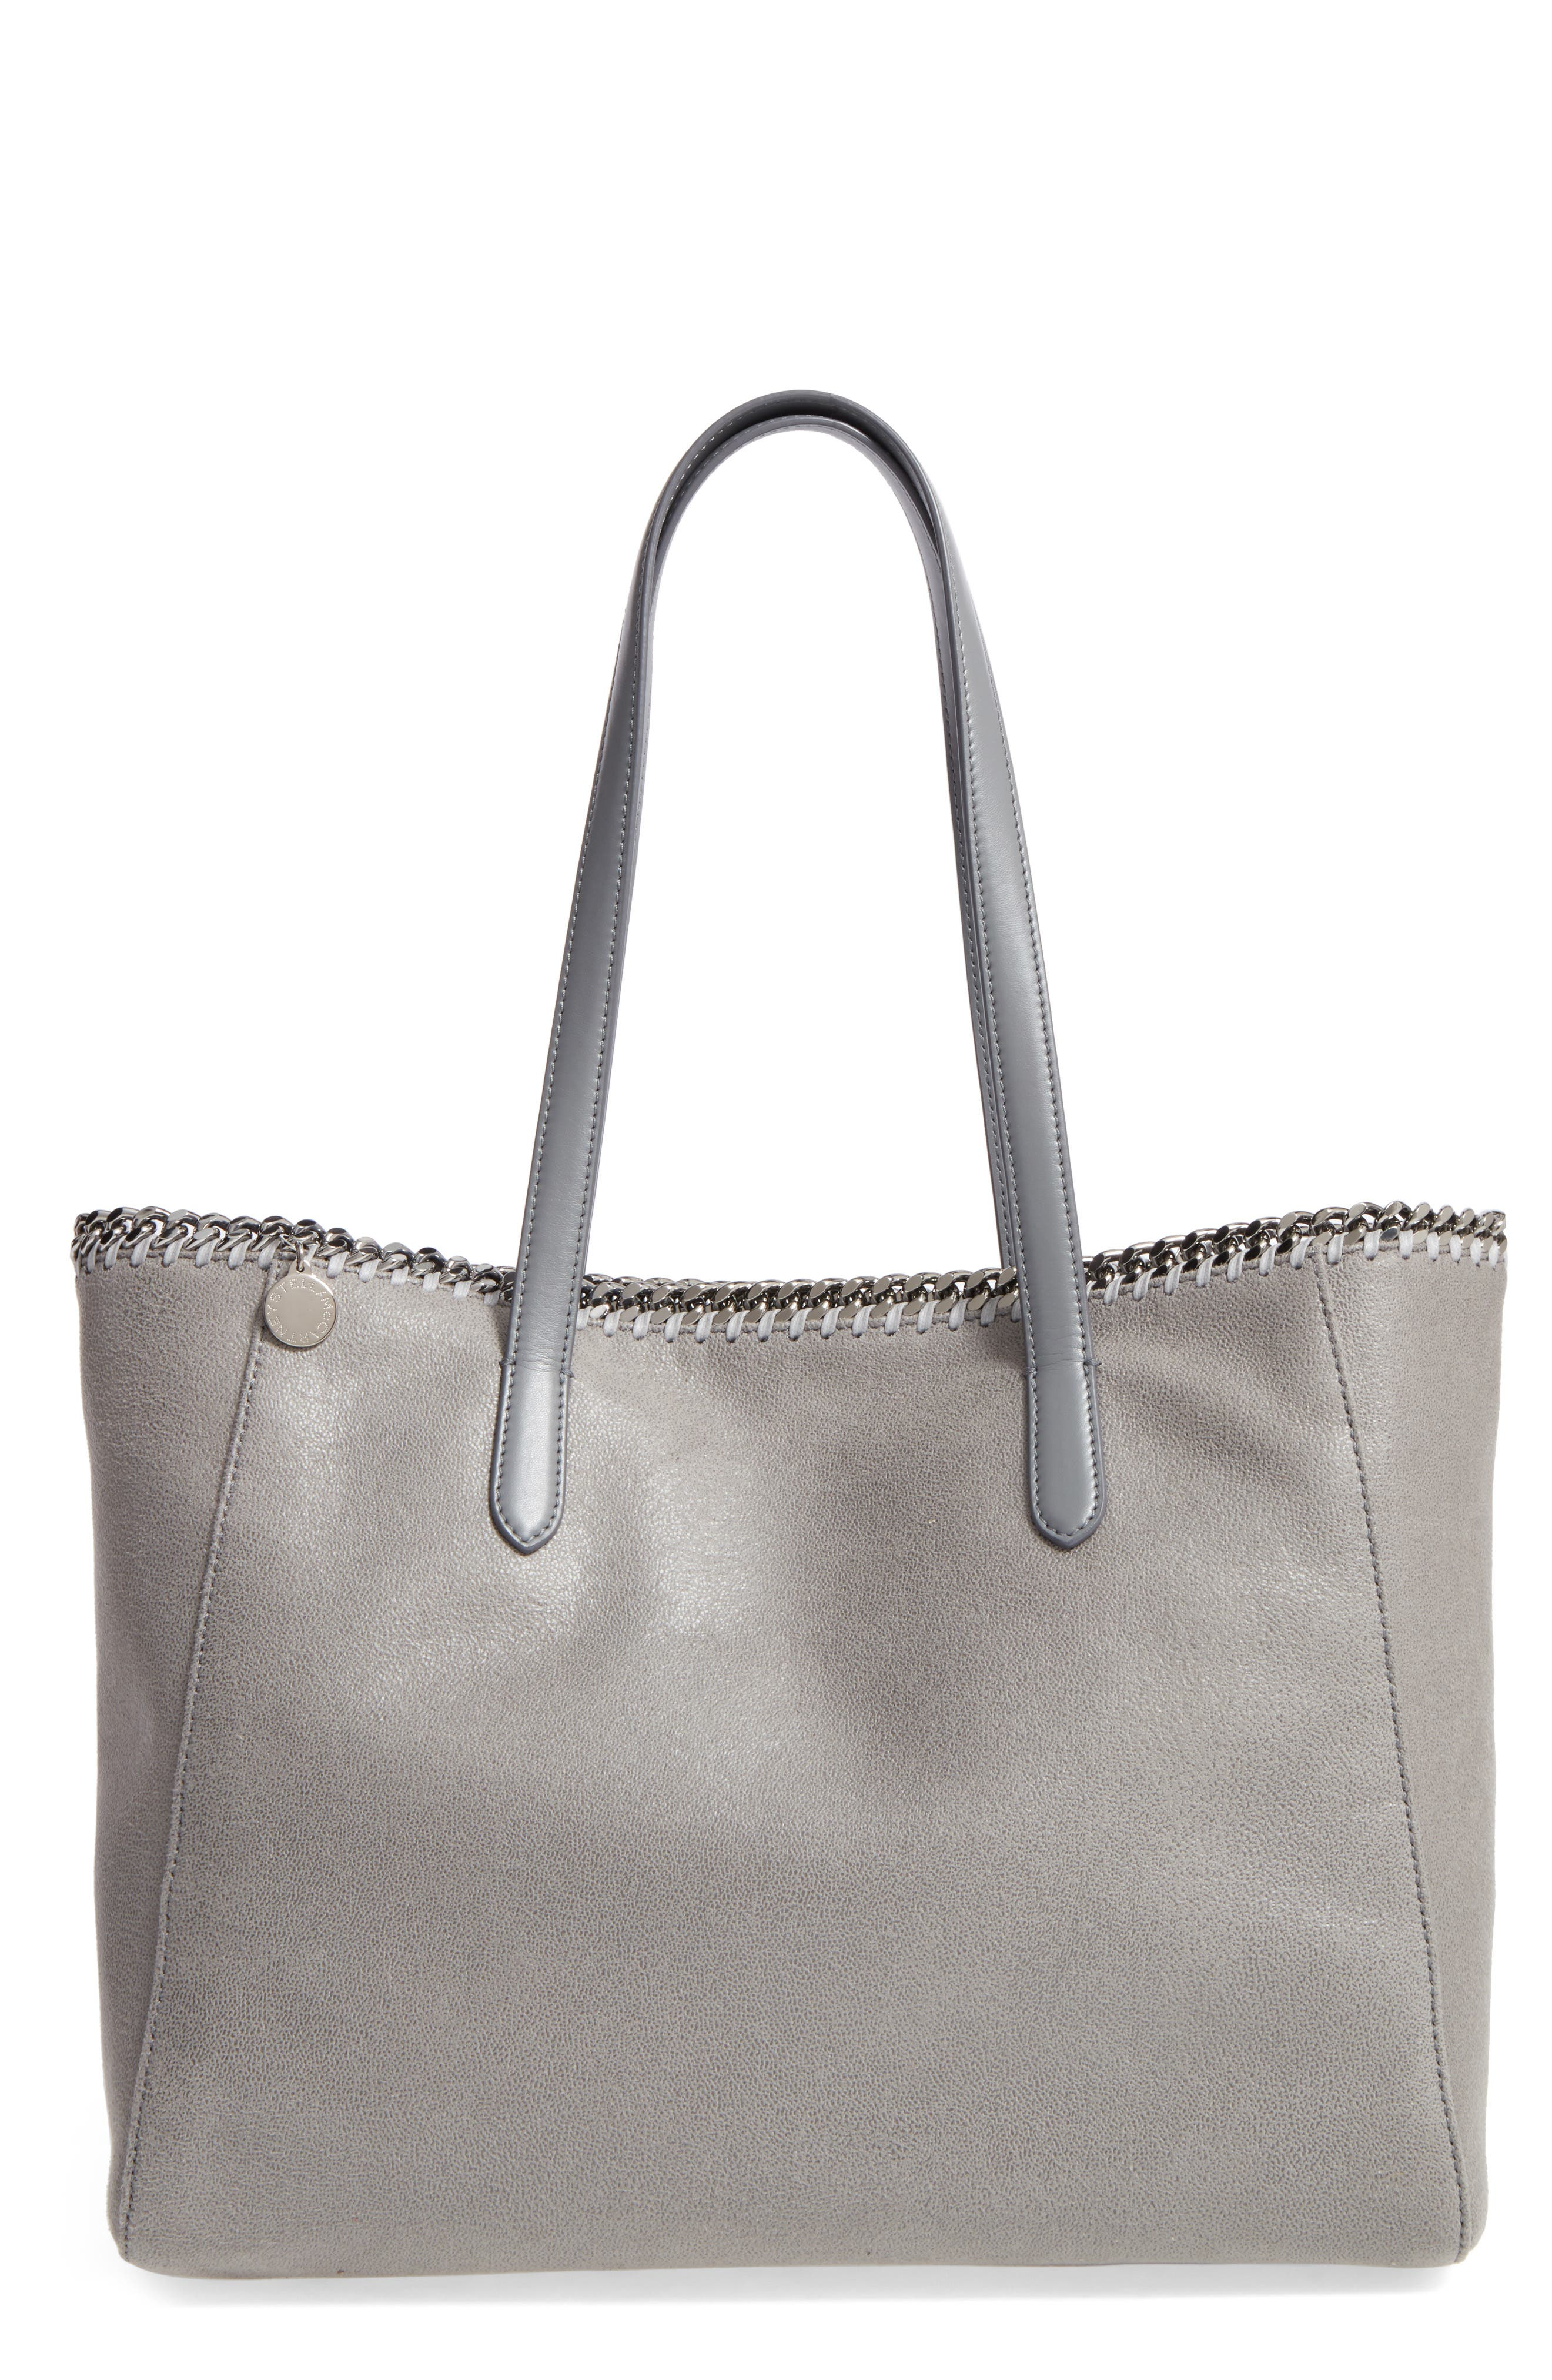 'Falabella - Shaggy Deer' Faux Leather Tote,                             Main thumbnail 2, color,